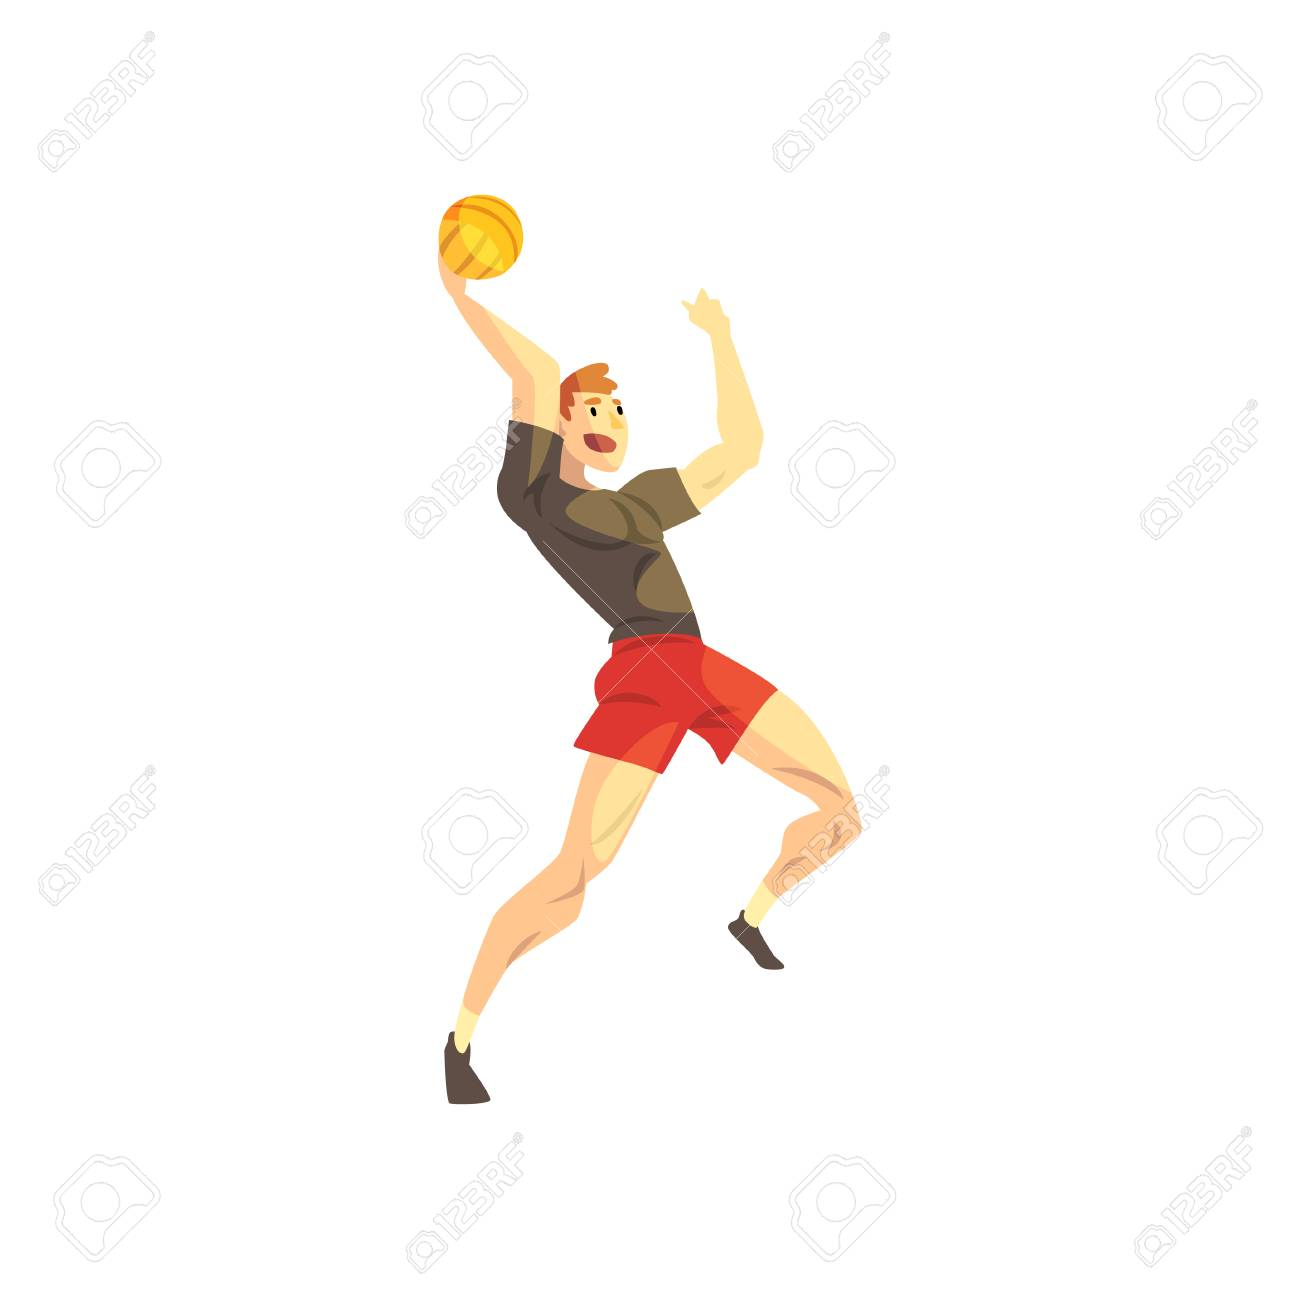 Male basketball player, sportsman character playing with ball, active sport lifestyle vector Illustration isolated on a white background. - 111655231